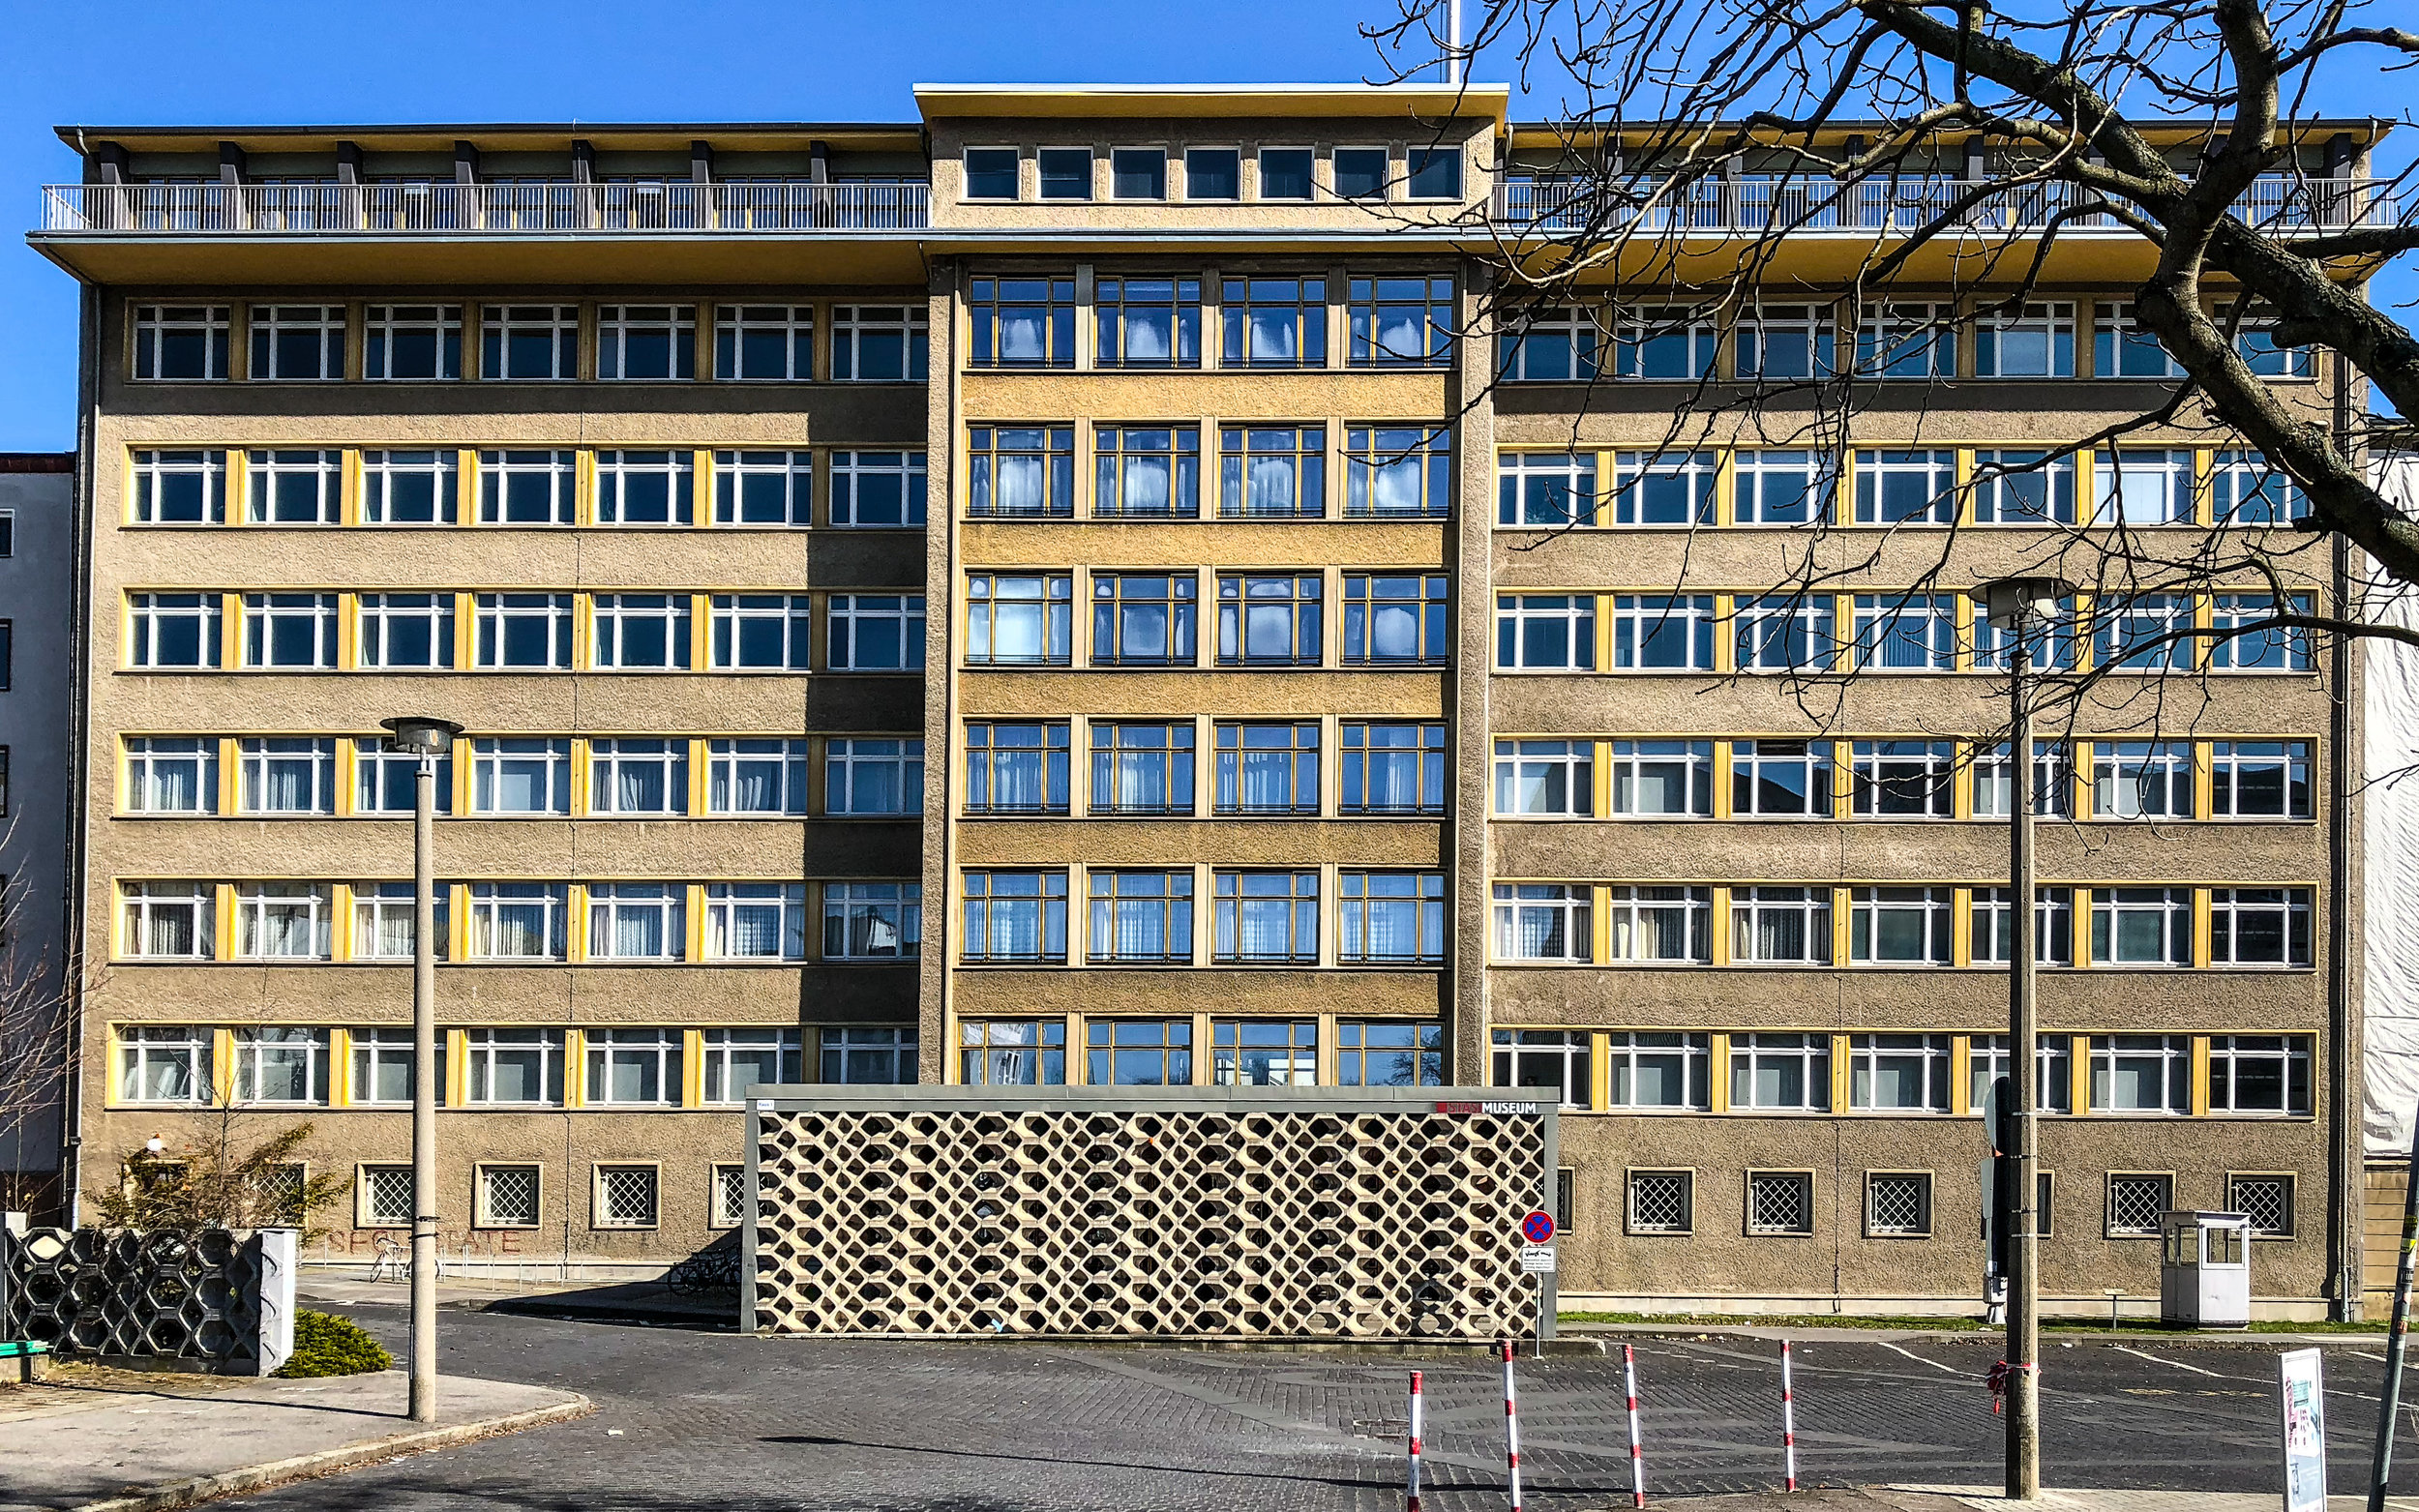 The Ministry for State Security, now part of the Stasi Museum